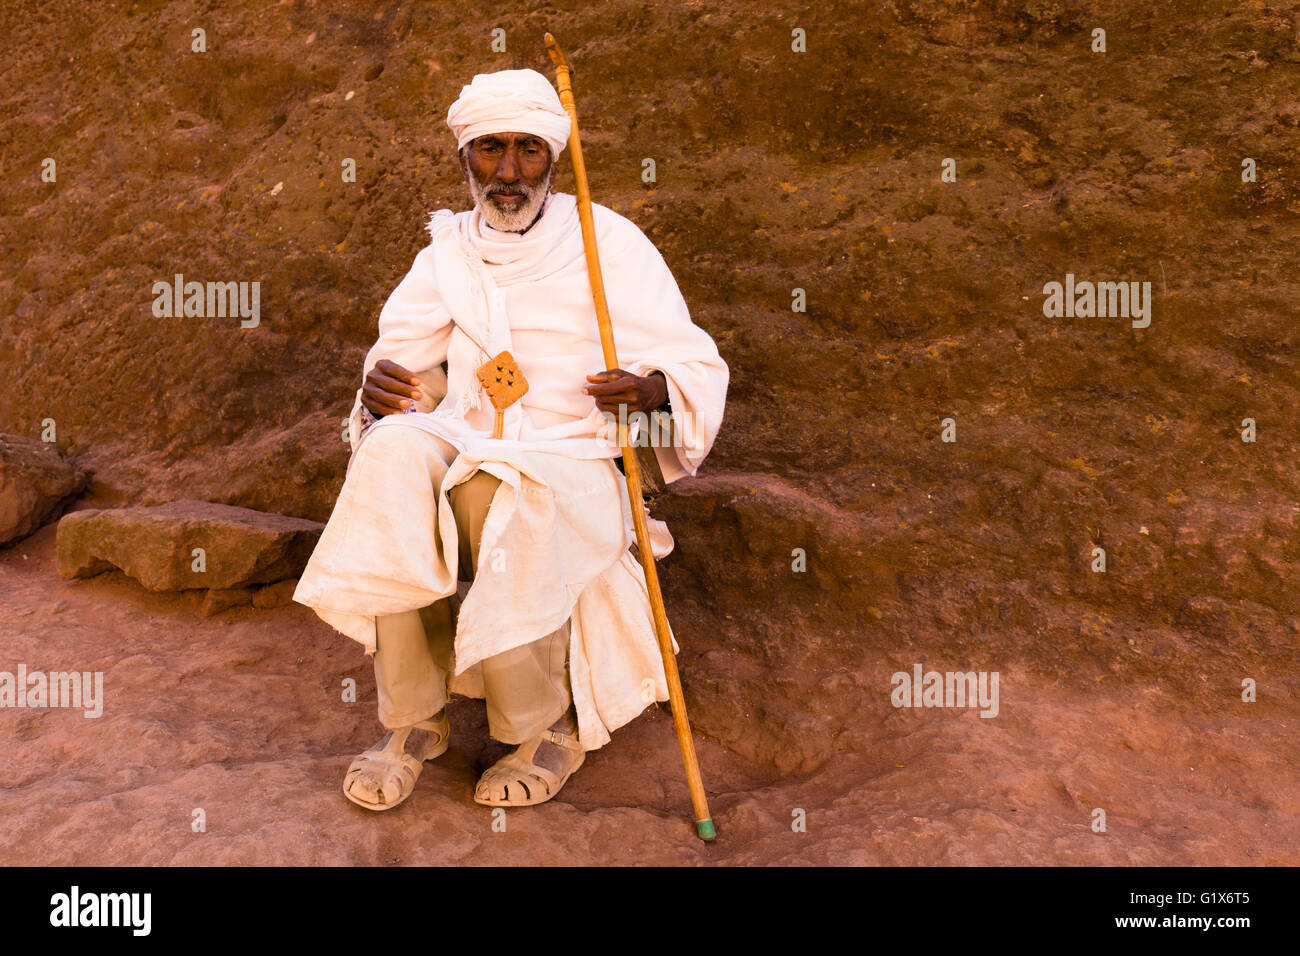 Old Priest, Southern Cluster, Lalibela, Ethiopia, Africa - Stock Image